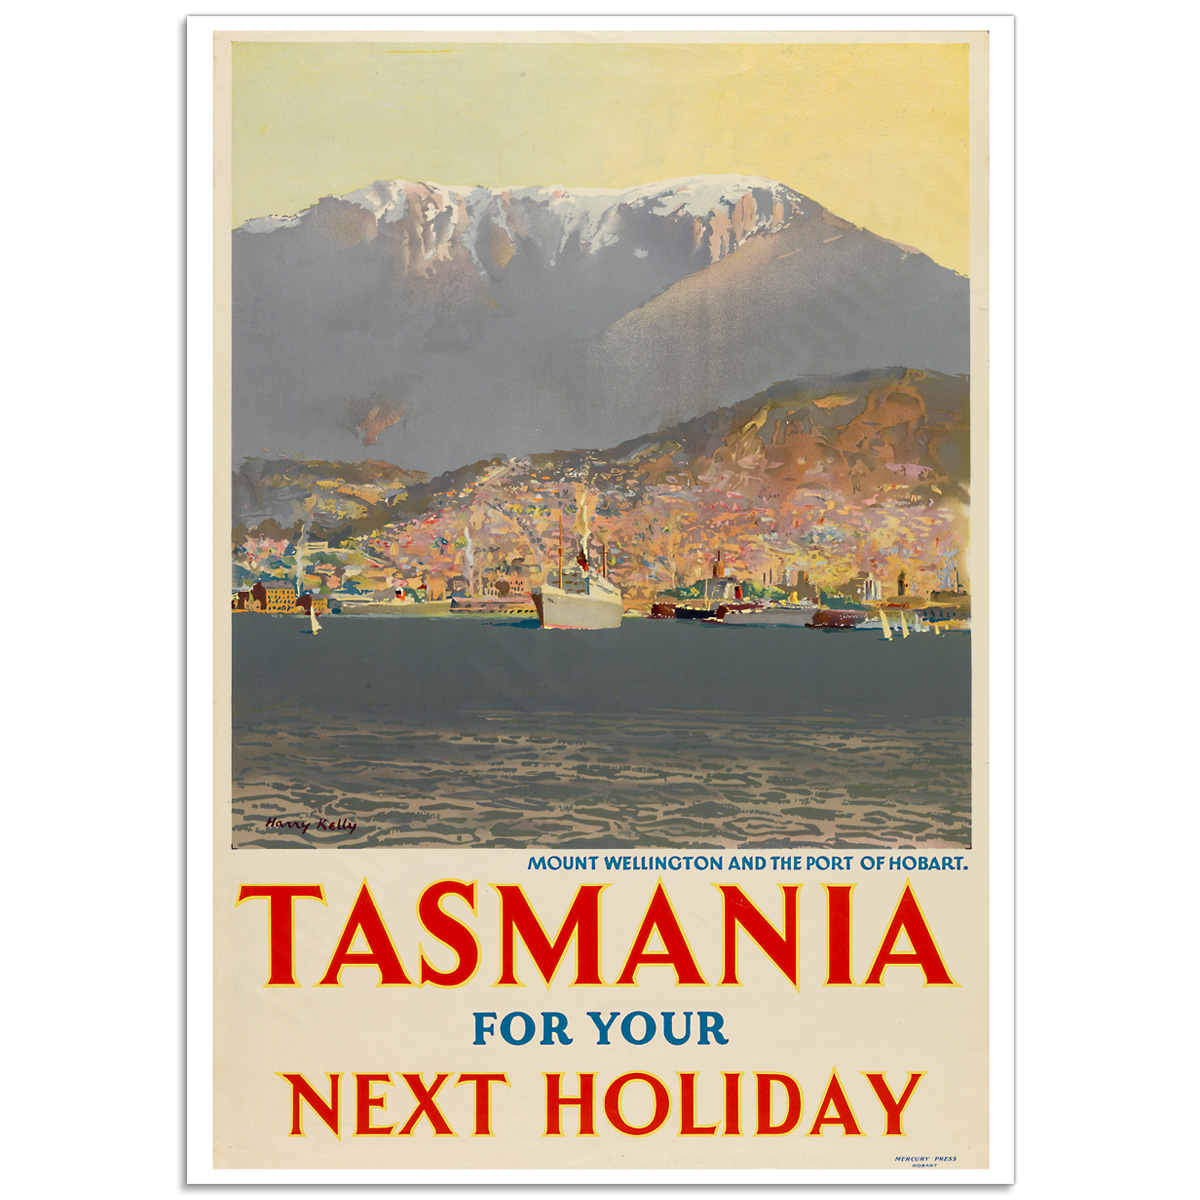 Vintage Travel Trailers: Tasmania - Mount Wellington And Port Of Hobart